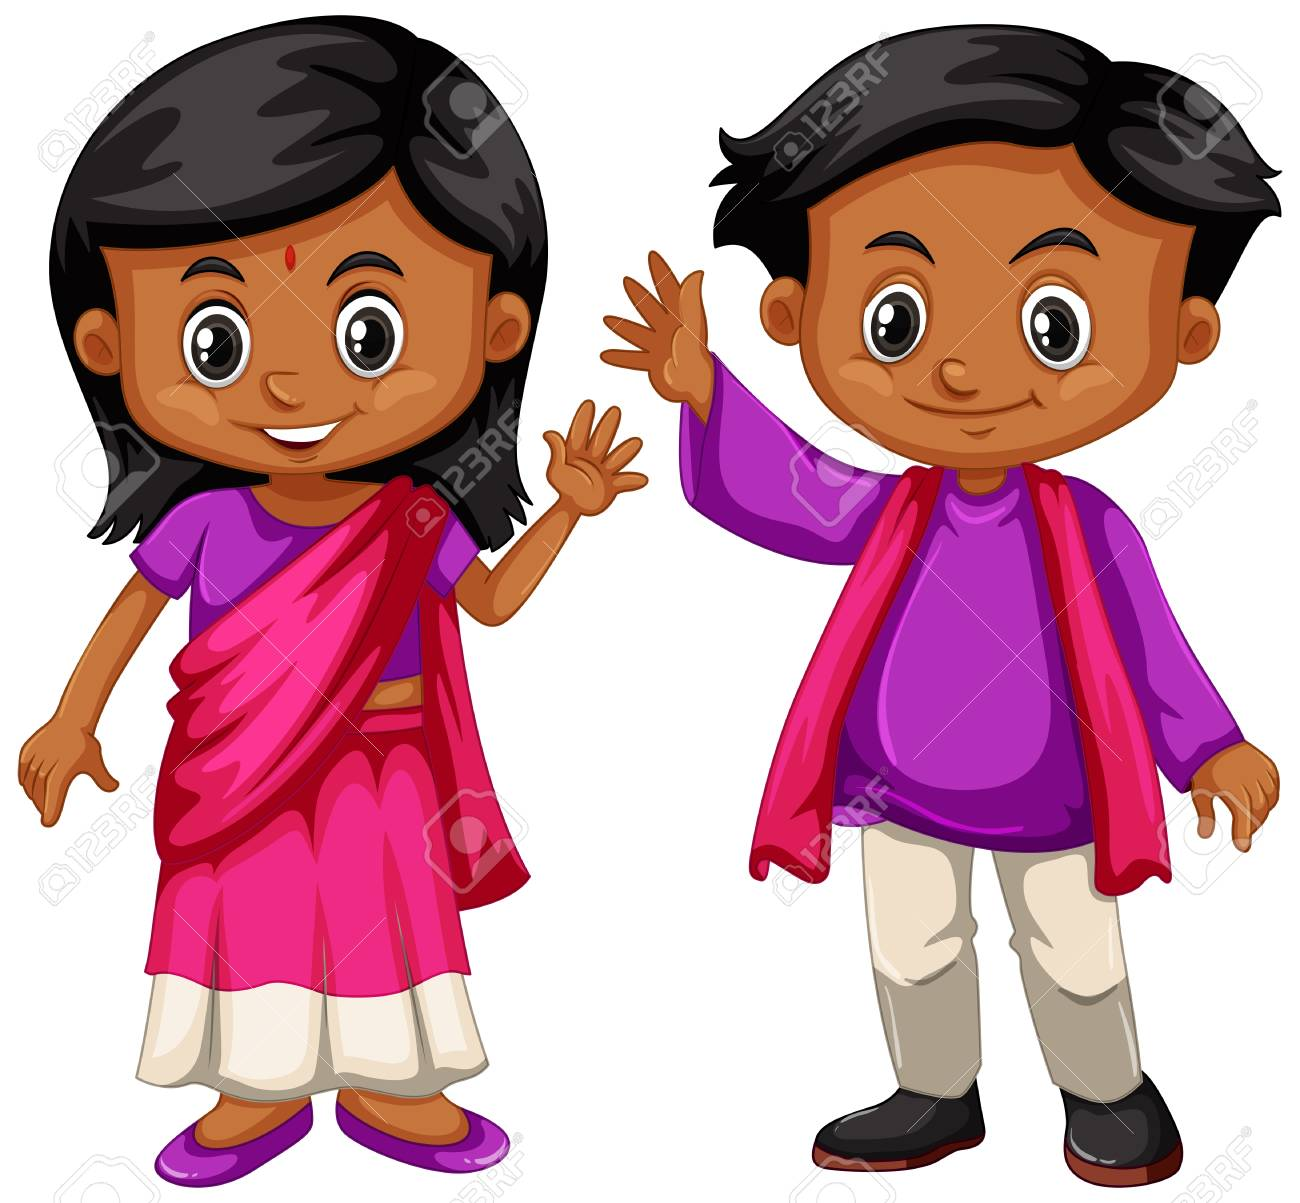 Indian boy and girl smiling illustration.